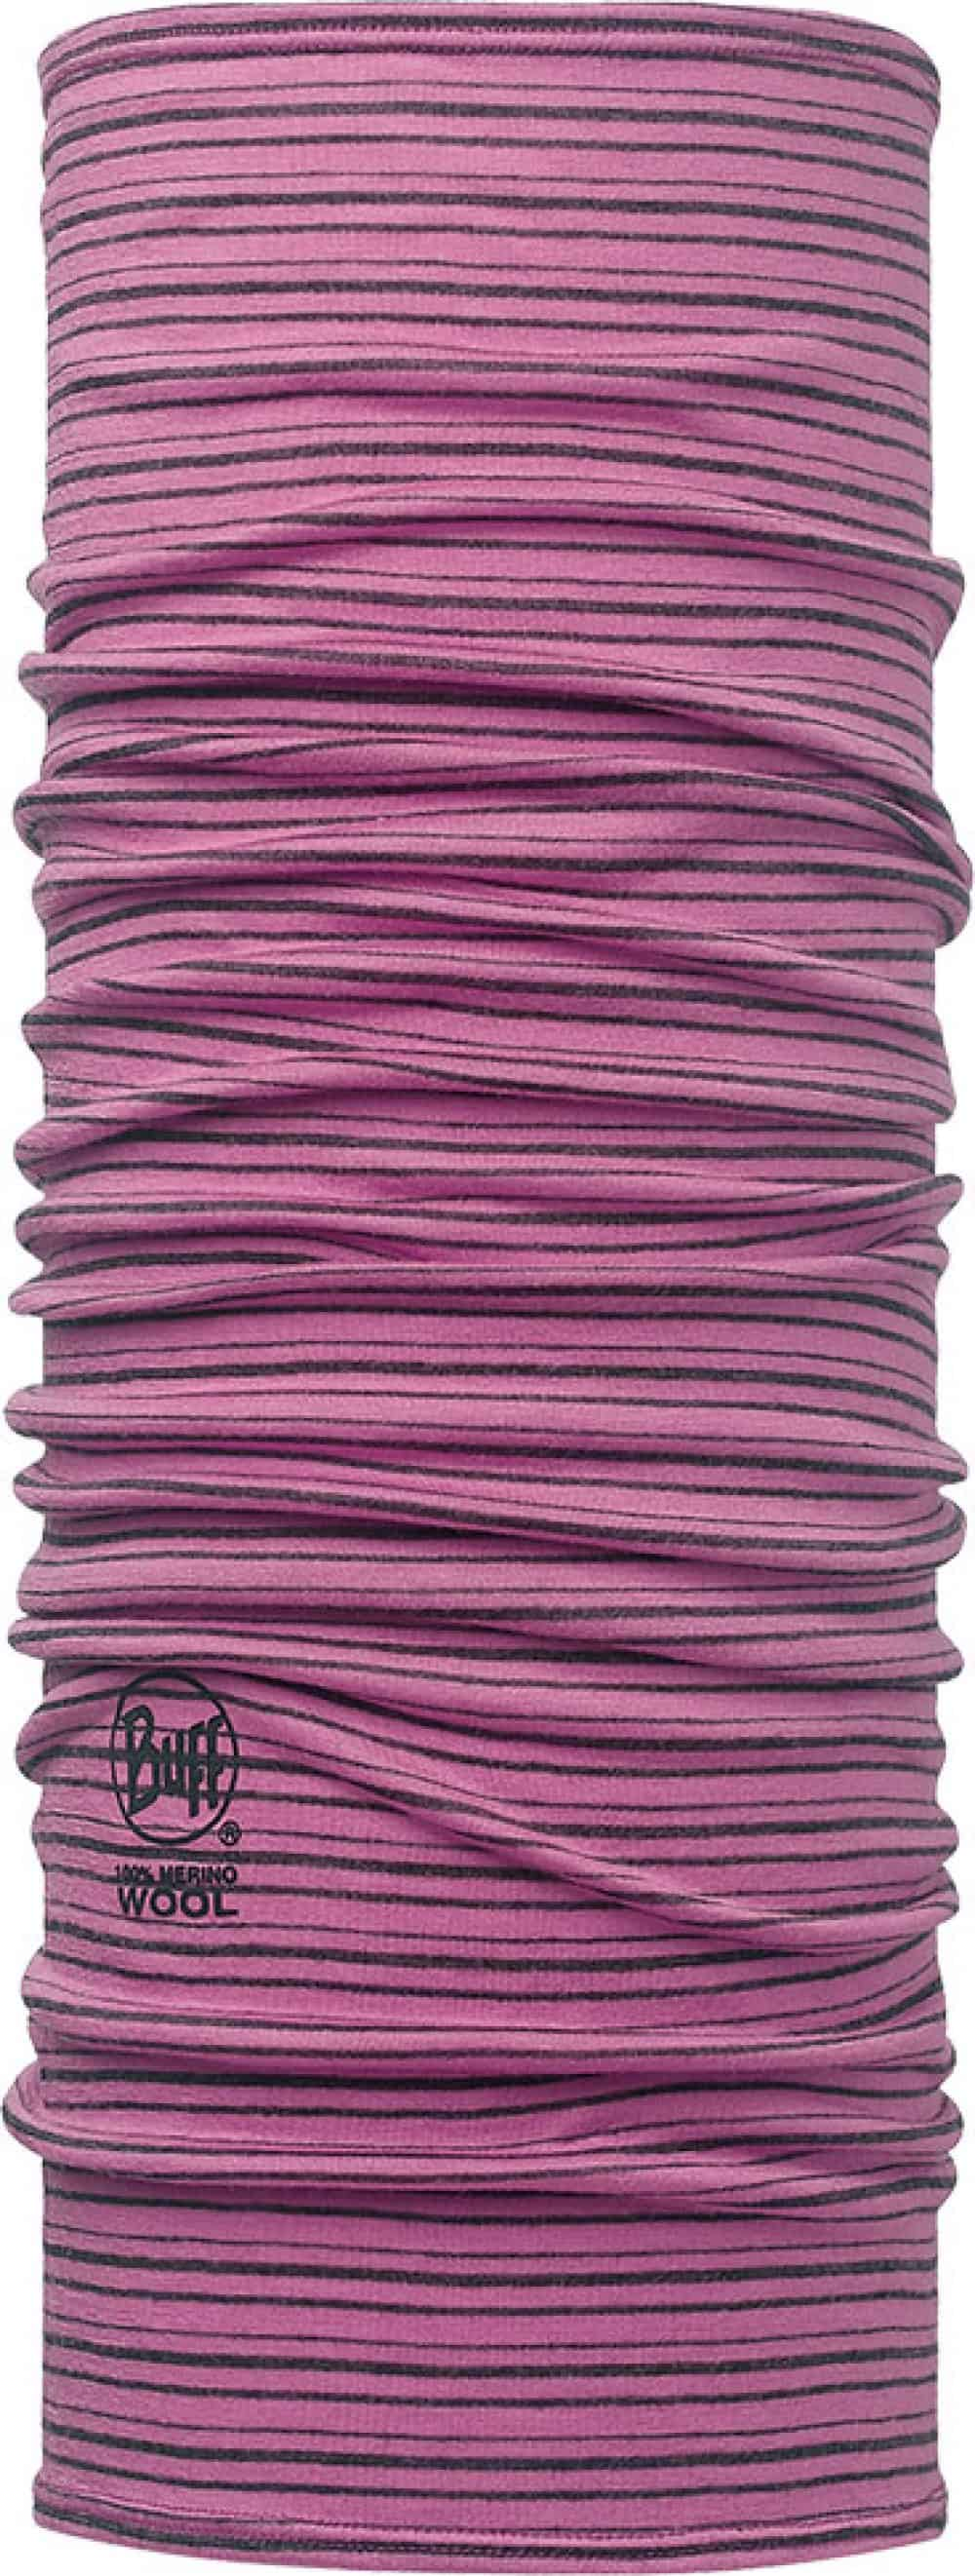 "Image of the Wool Buff® Design ""Ibis Rose Stripes"""